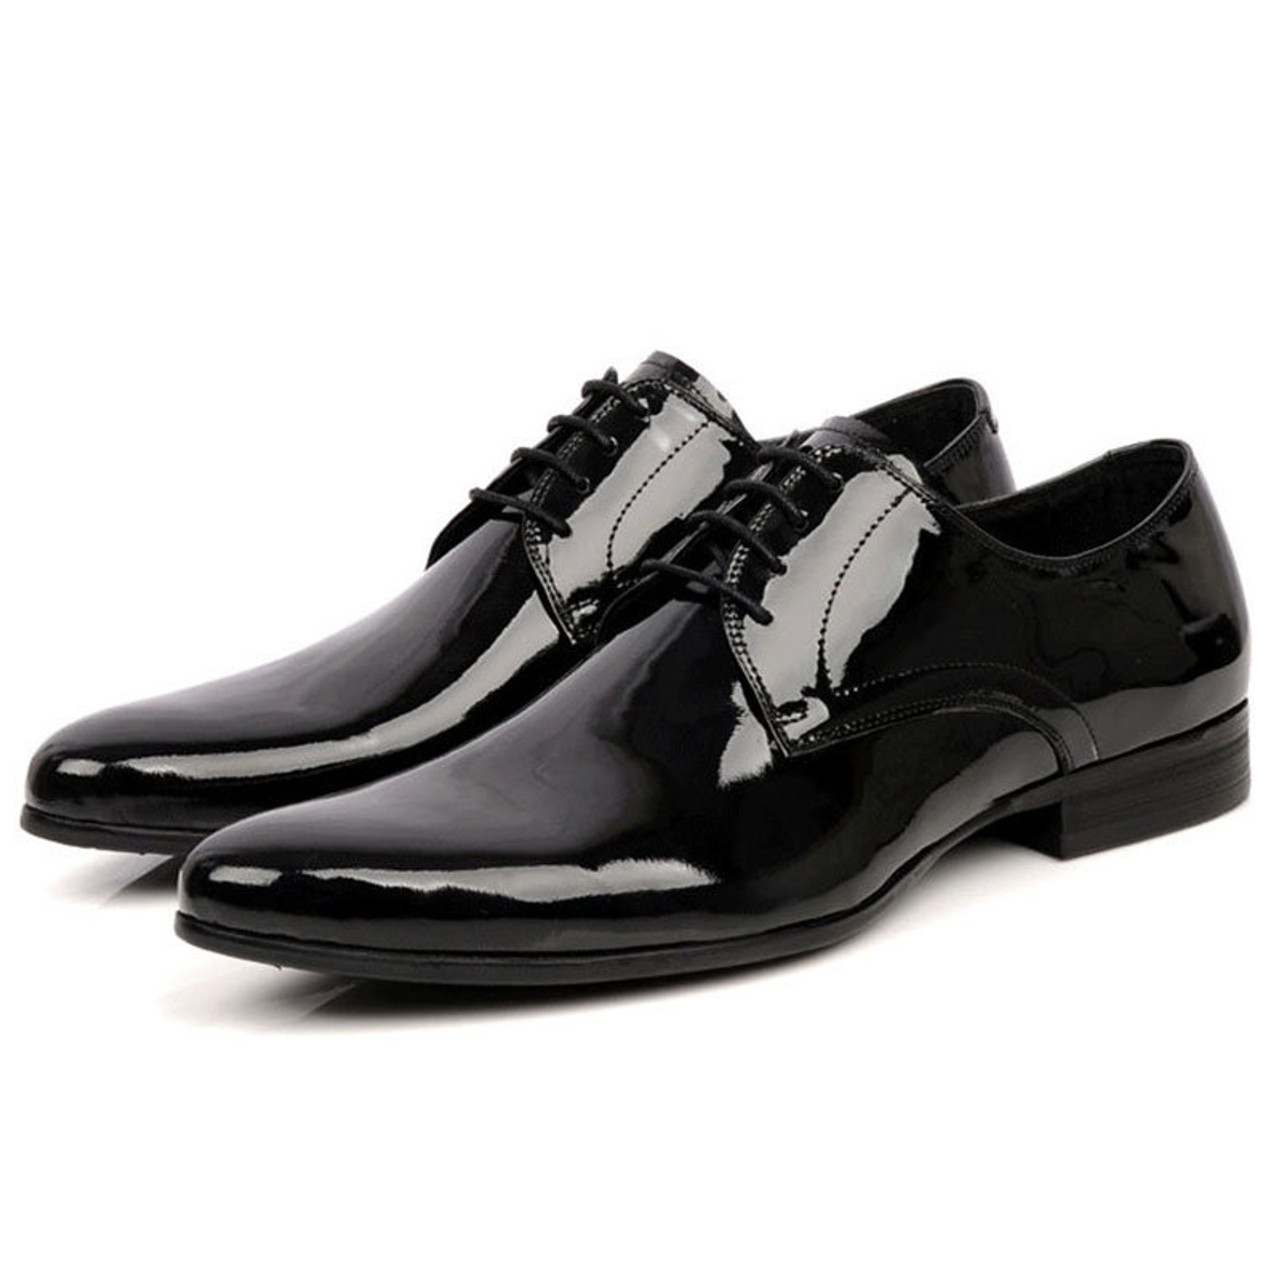 b770f7a0dc Mens Black Patent Leather Shoes | Men's Tuxedo Shoes For Wedding